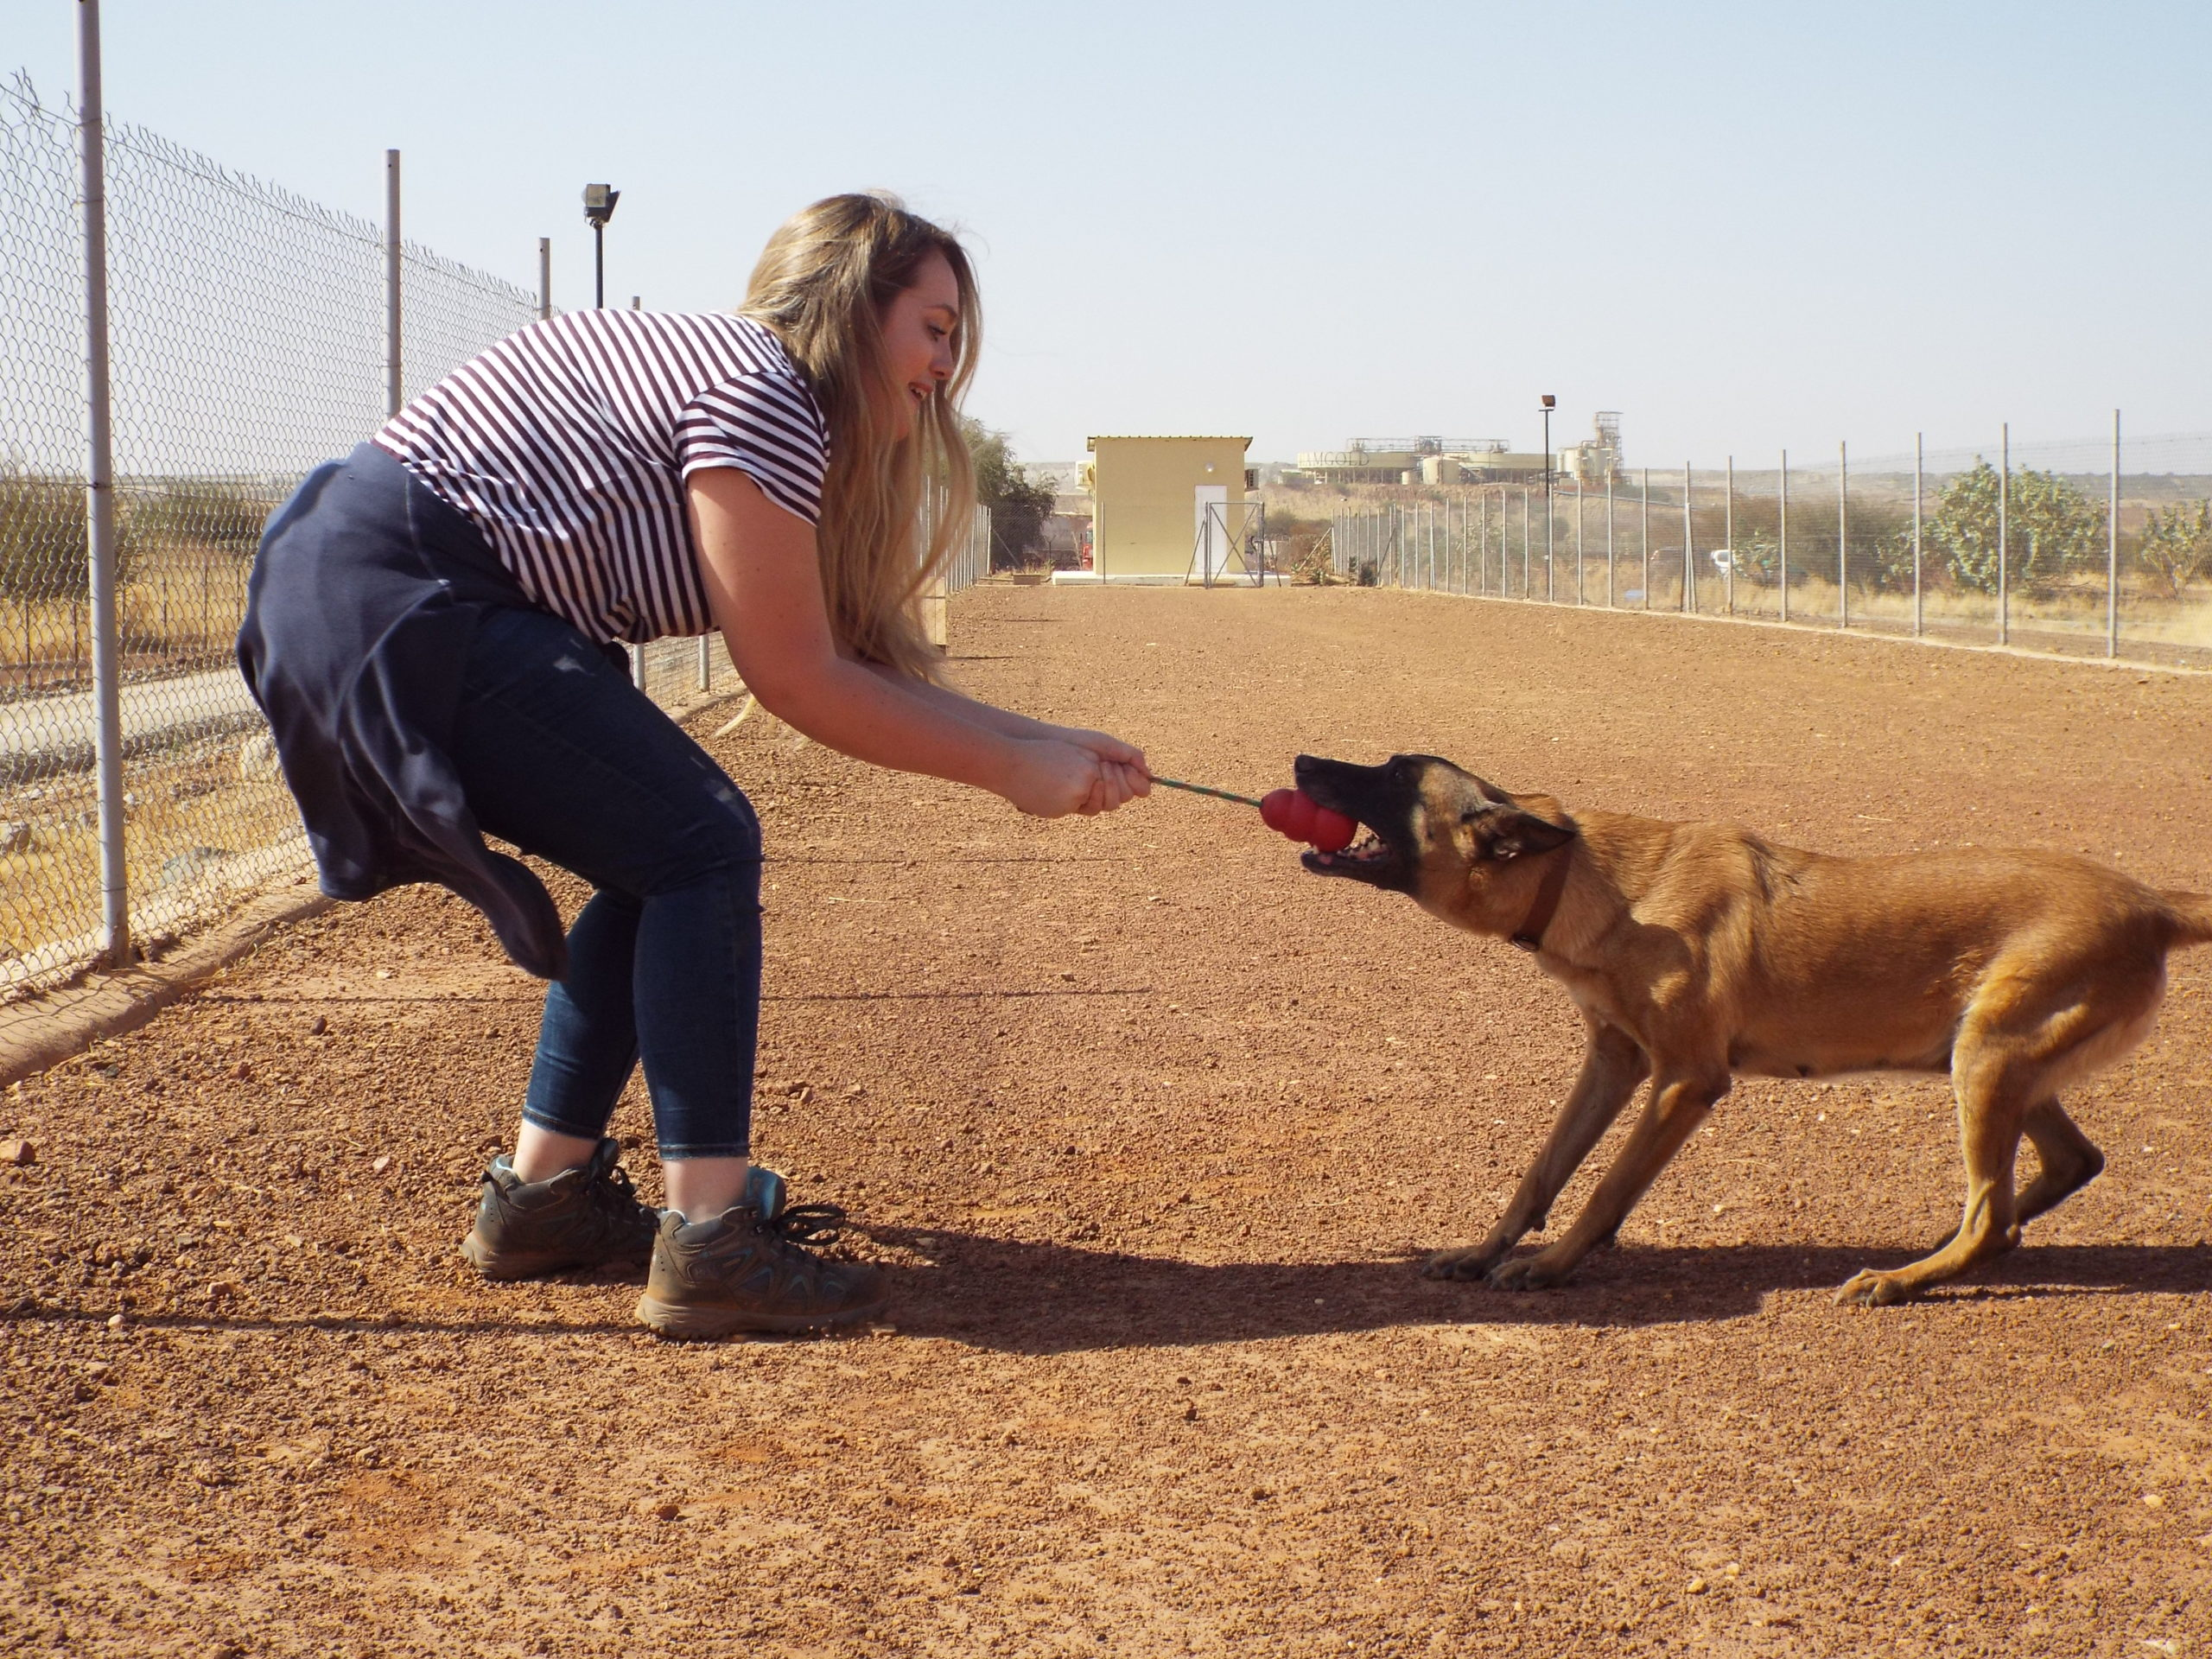 Project Executive Kelly experiencing bite training with SafeLane canines in Burkina Faso